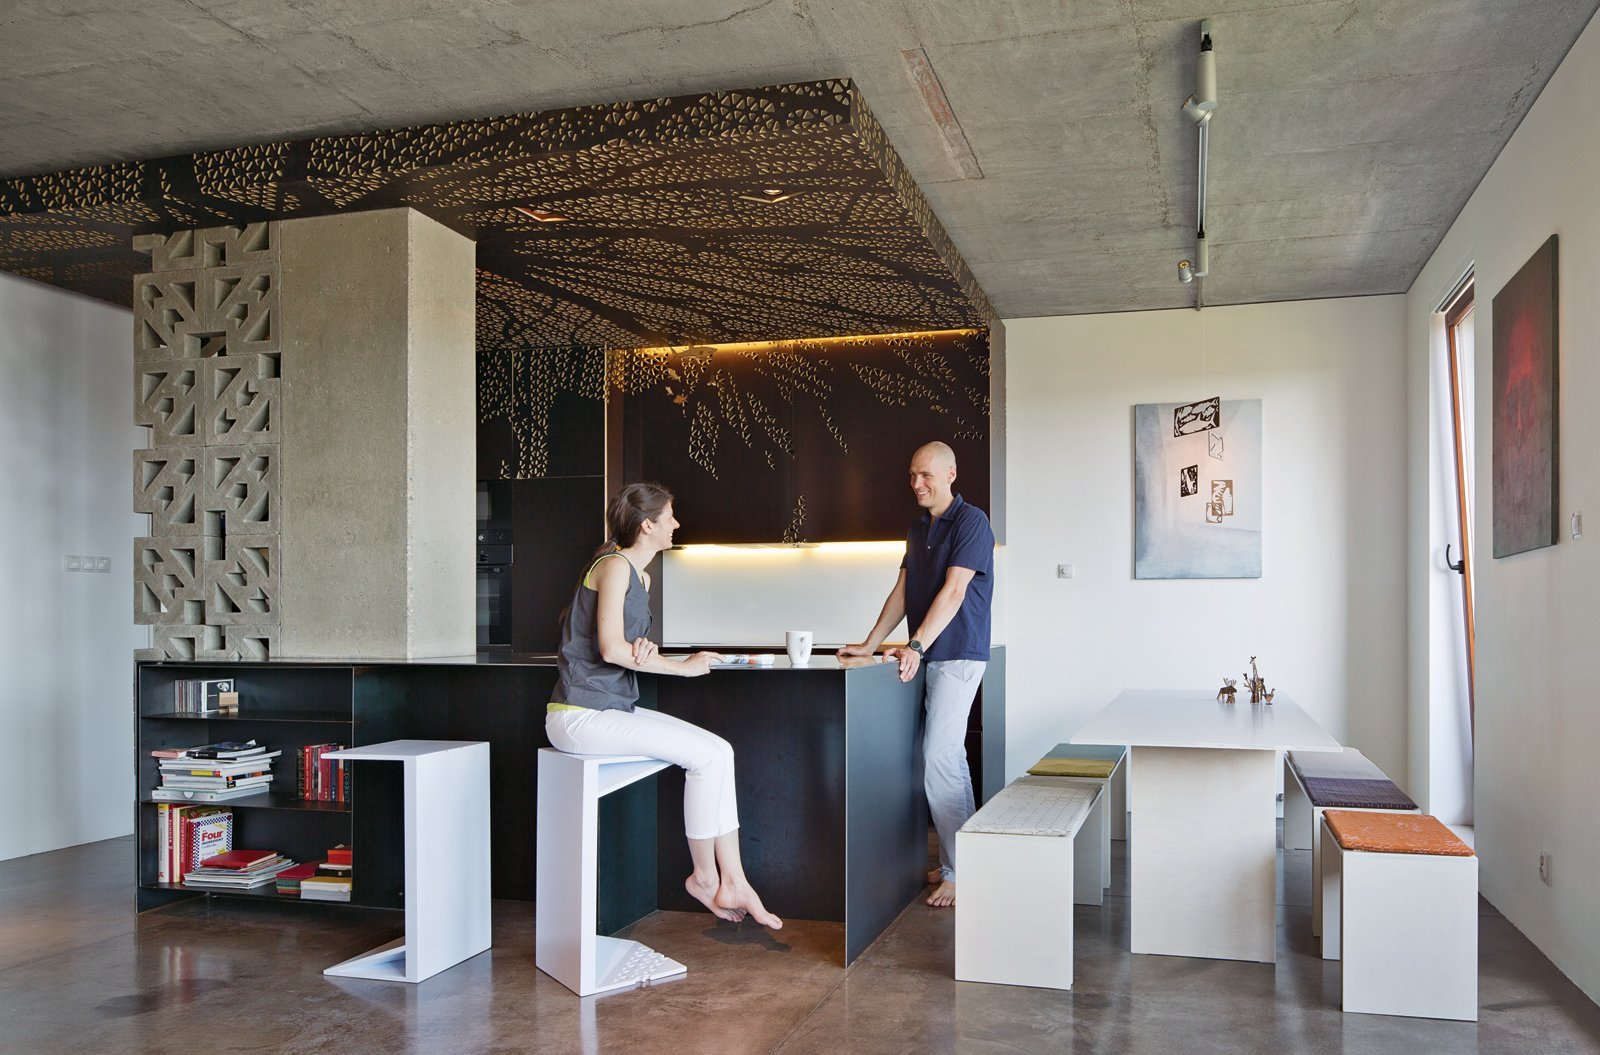 Nix and Novak-Zemplinski, founders of the design firm BioLINIA, in their 1,000-square-foot apartment's open-plan kitchen, dining, and living space. They had the decorative cabinets and ceiling panels CNC-milled by a Polish subsidiary of the Finnish company Koskisen. Photo by Andreas Meichsner.